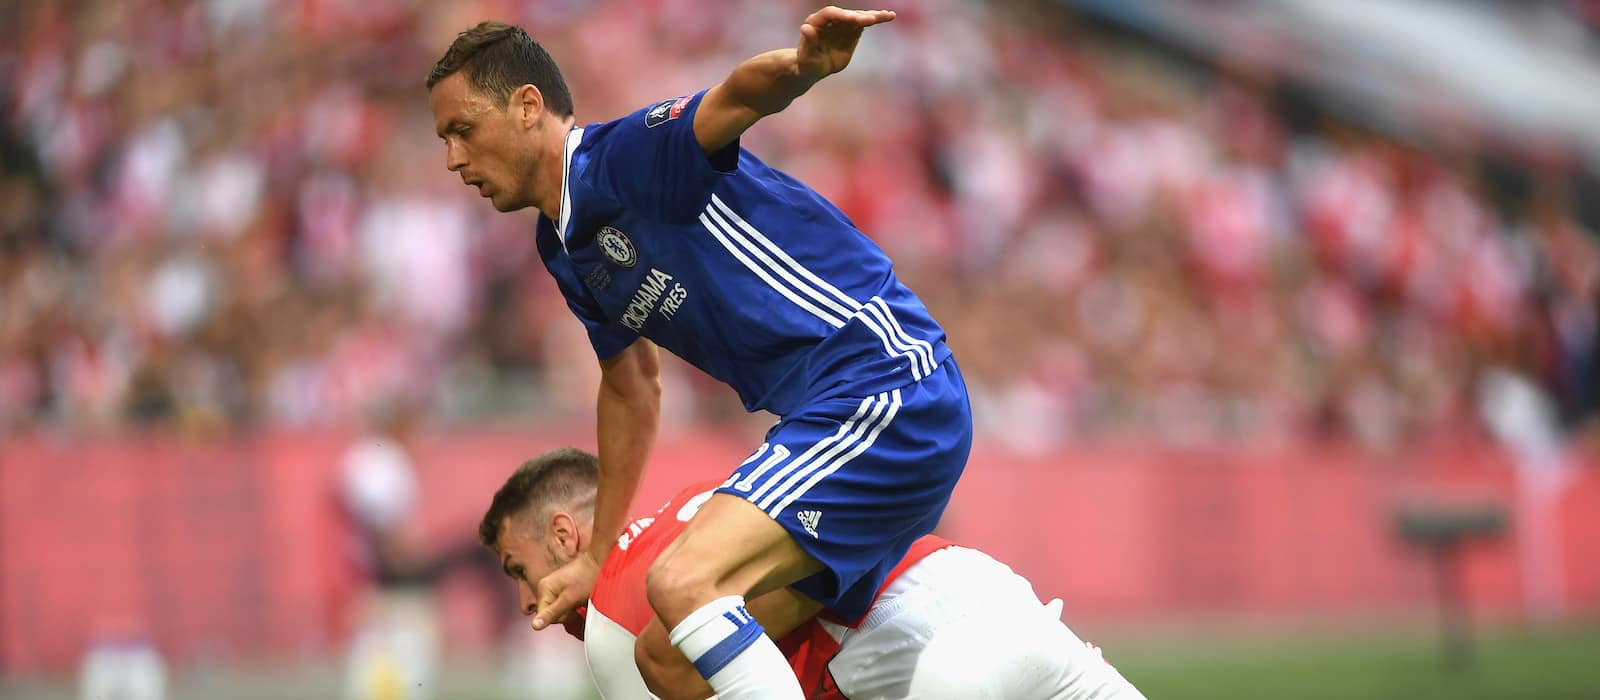 Nemanja Matic training alone at Chelsea amid speculation surrounding Manchester United transfer – report